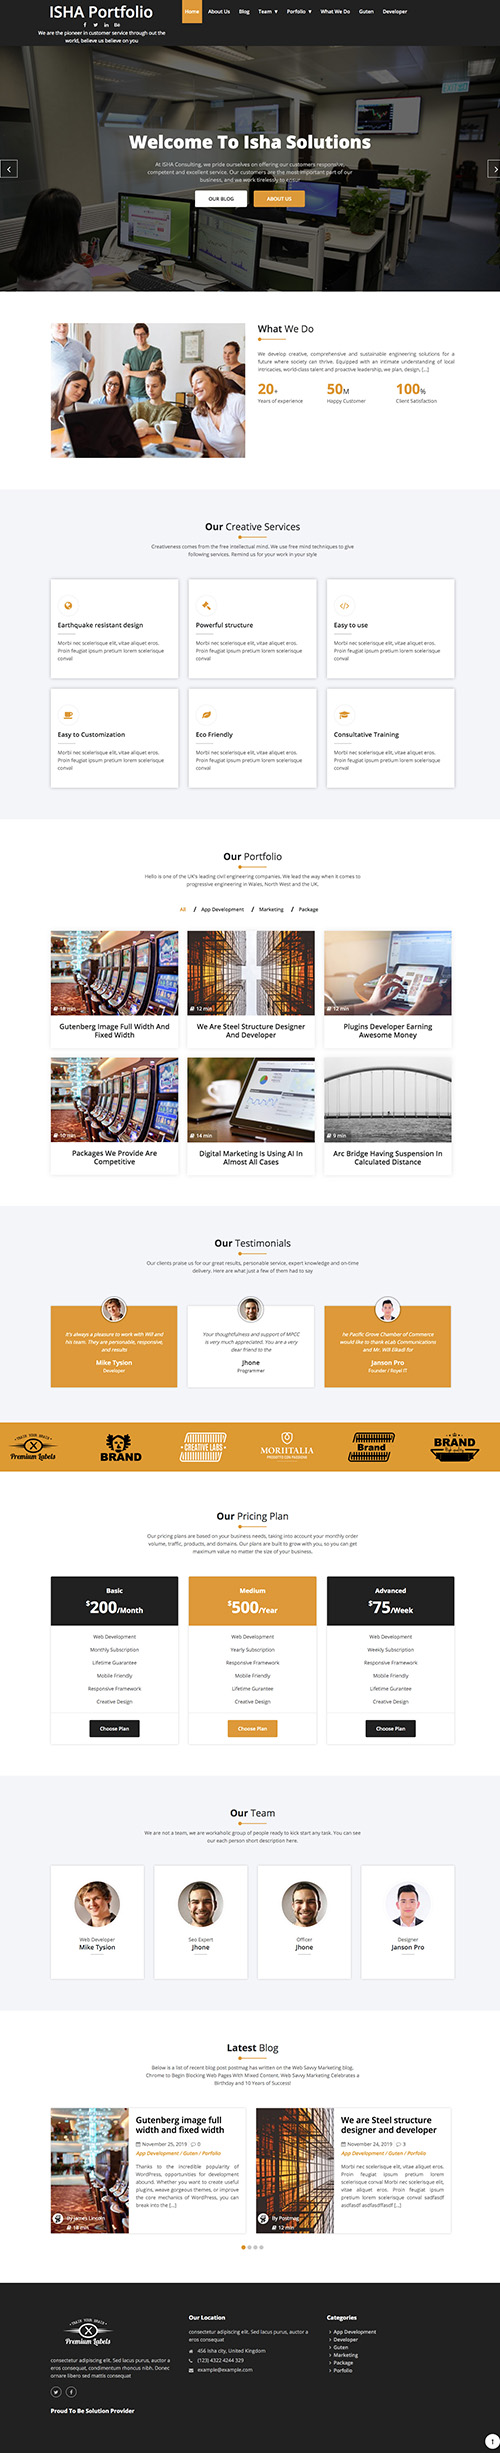 isha portfolio wordpress theme